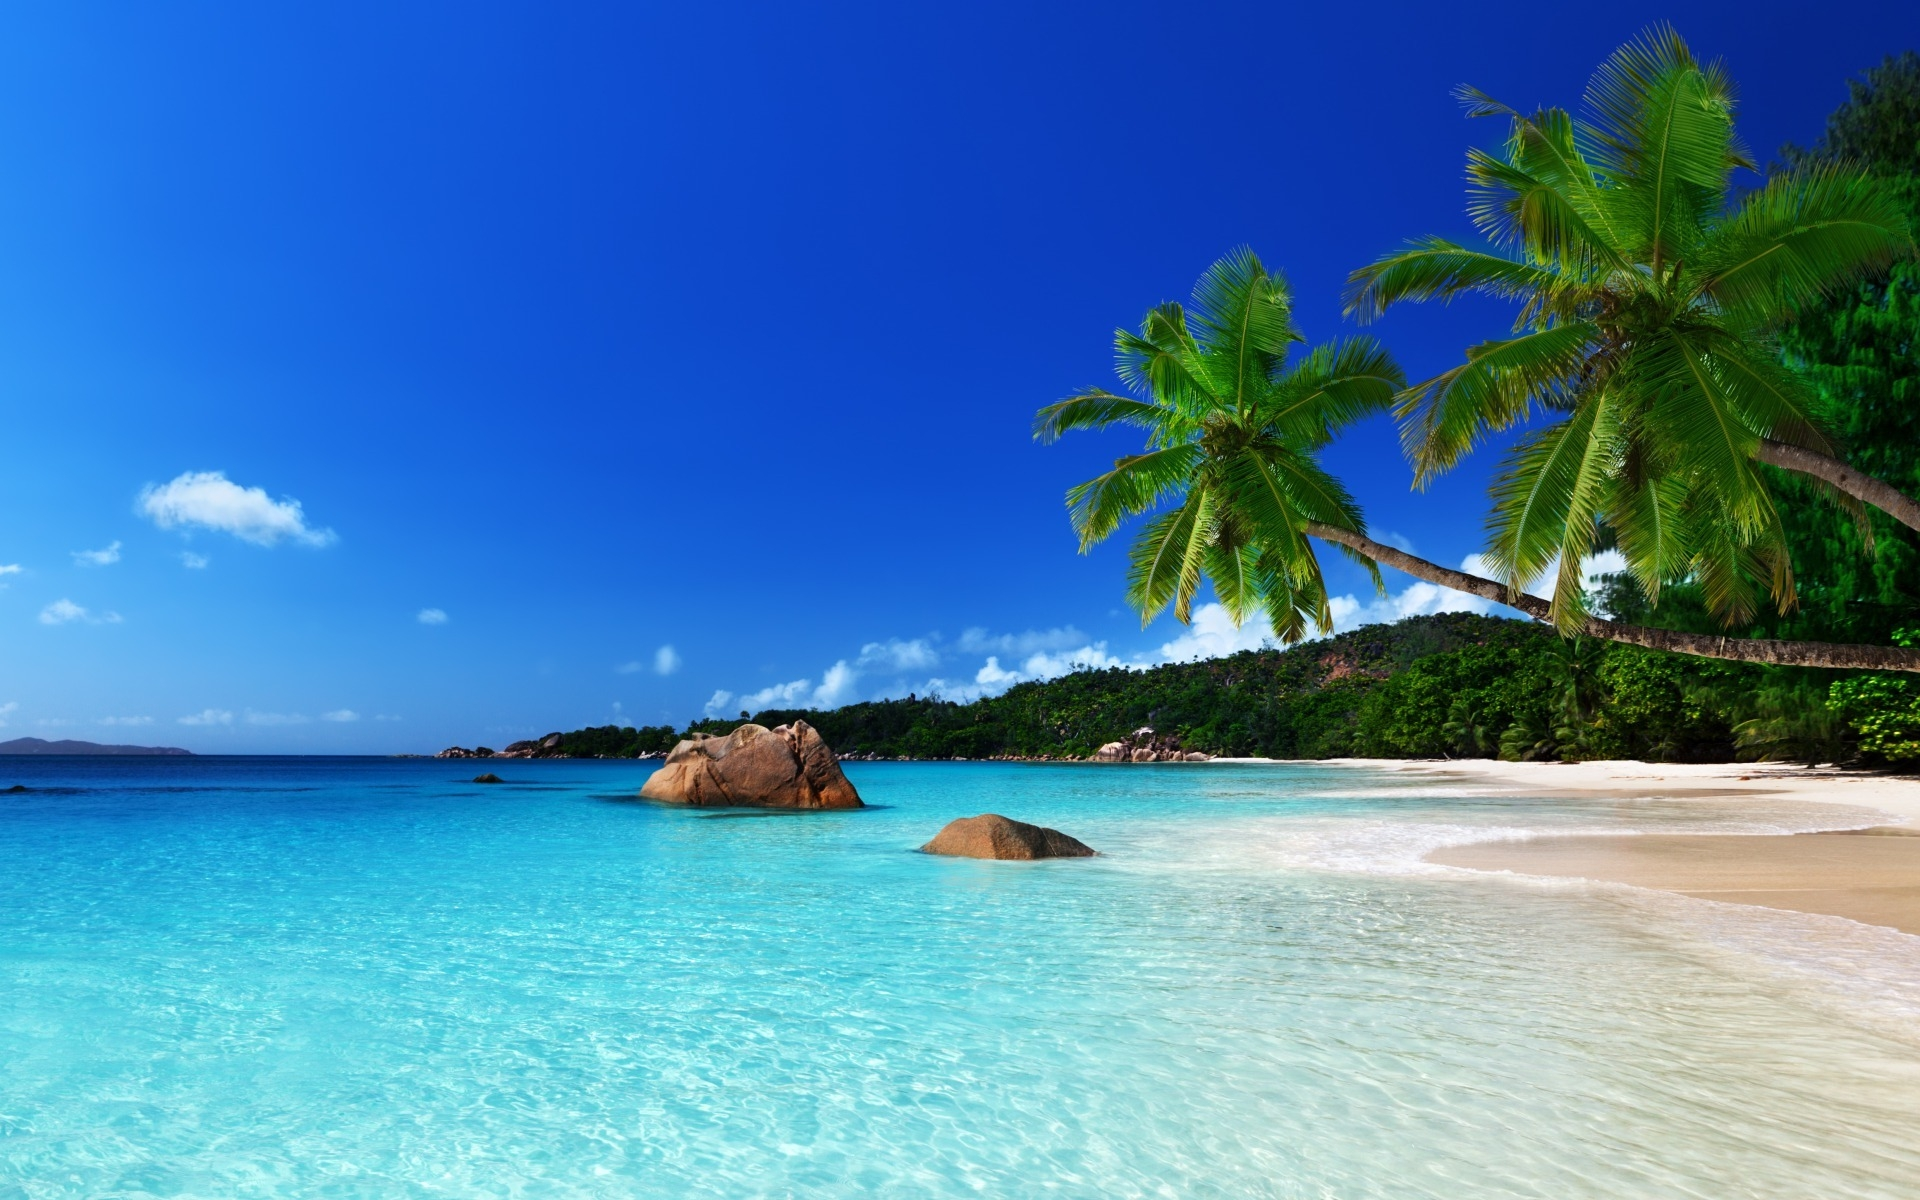 Wallpapersafari: Tropical Island Wallpaper